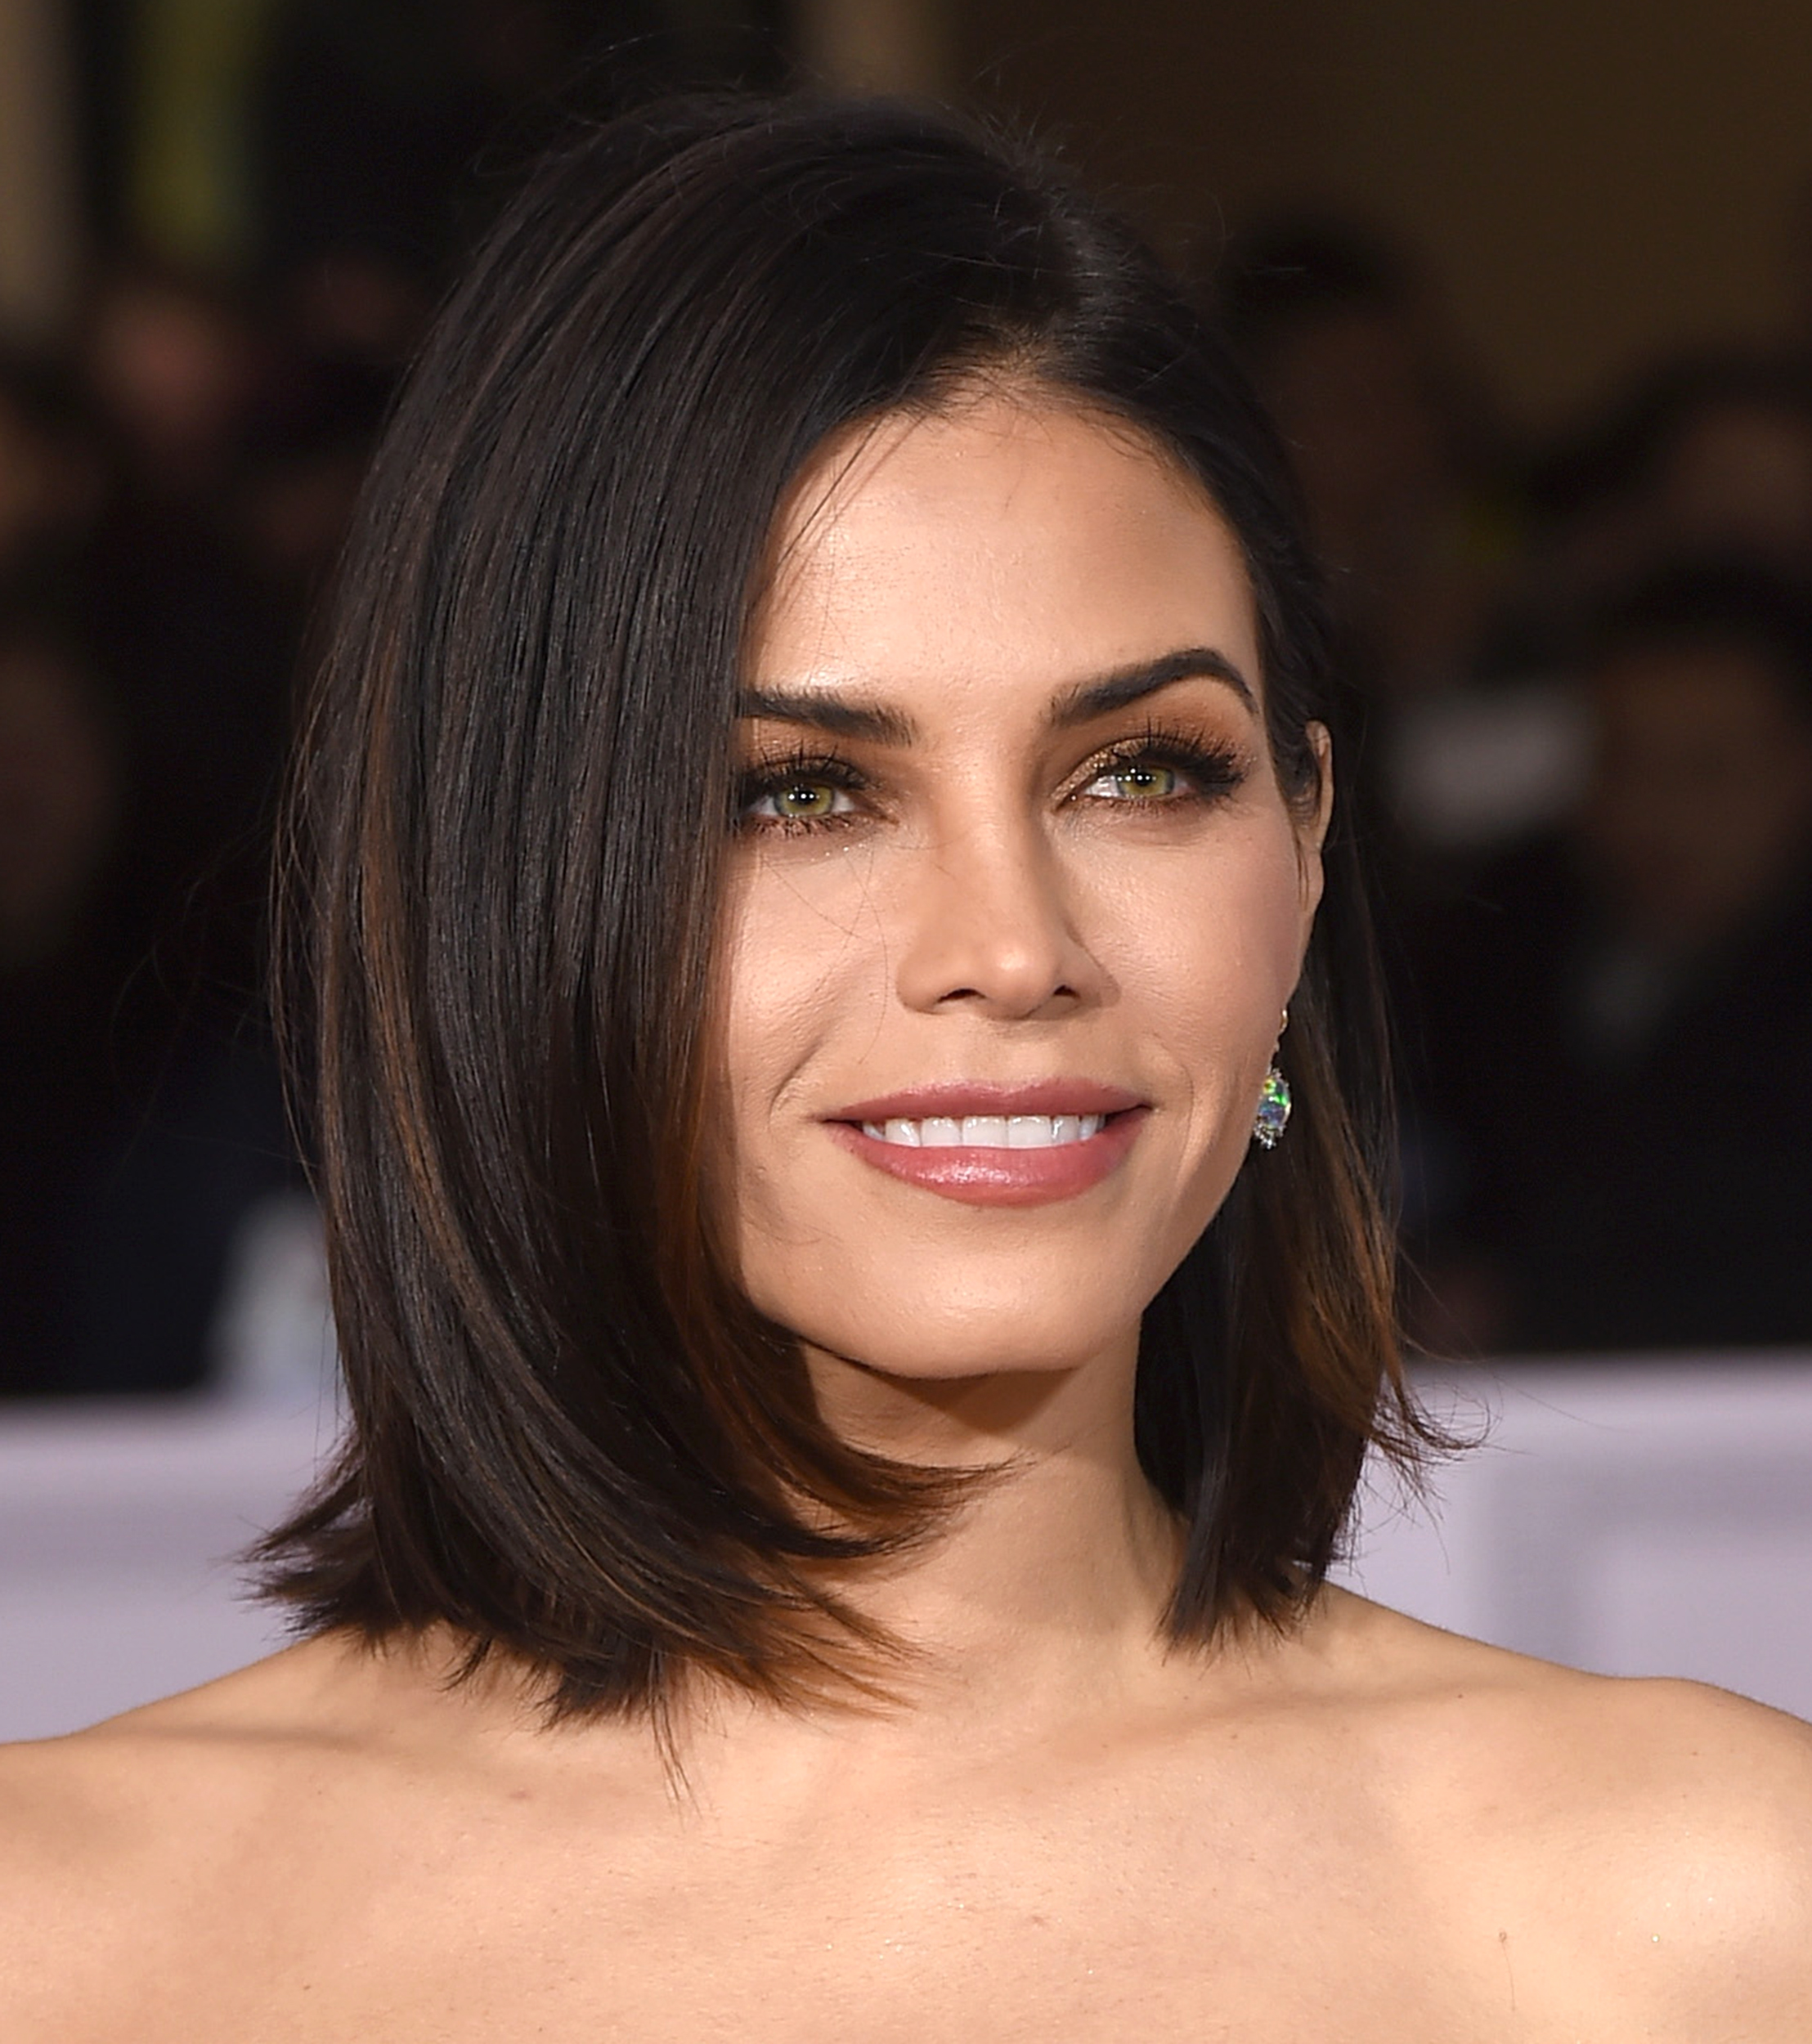 Short hairstyles inspired by celebrity \'dos